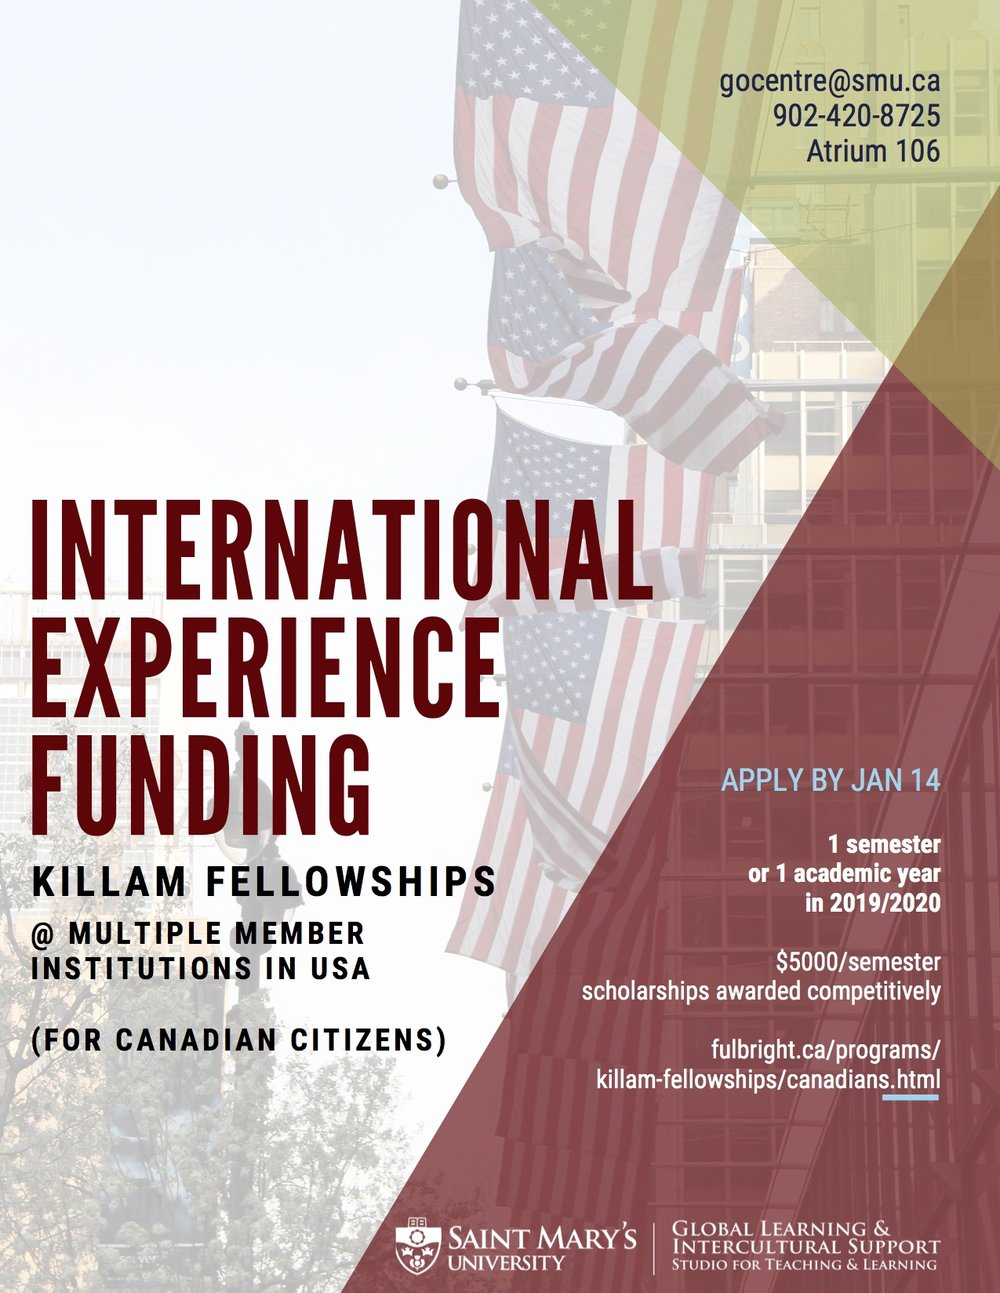 Killam Fellowships Poster.jpg